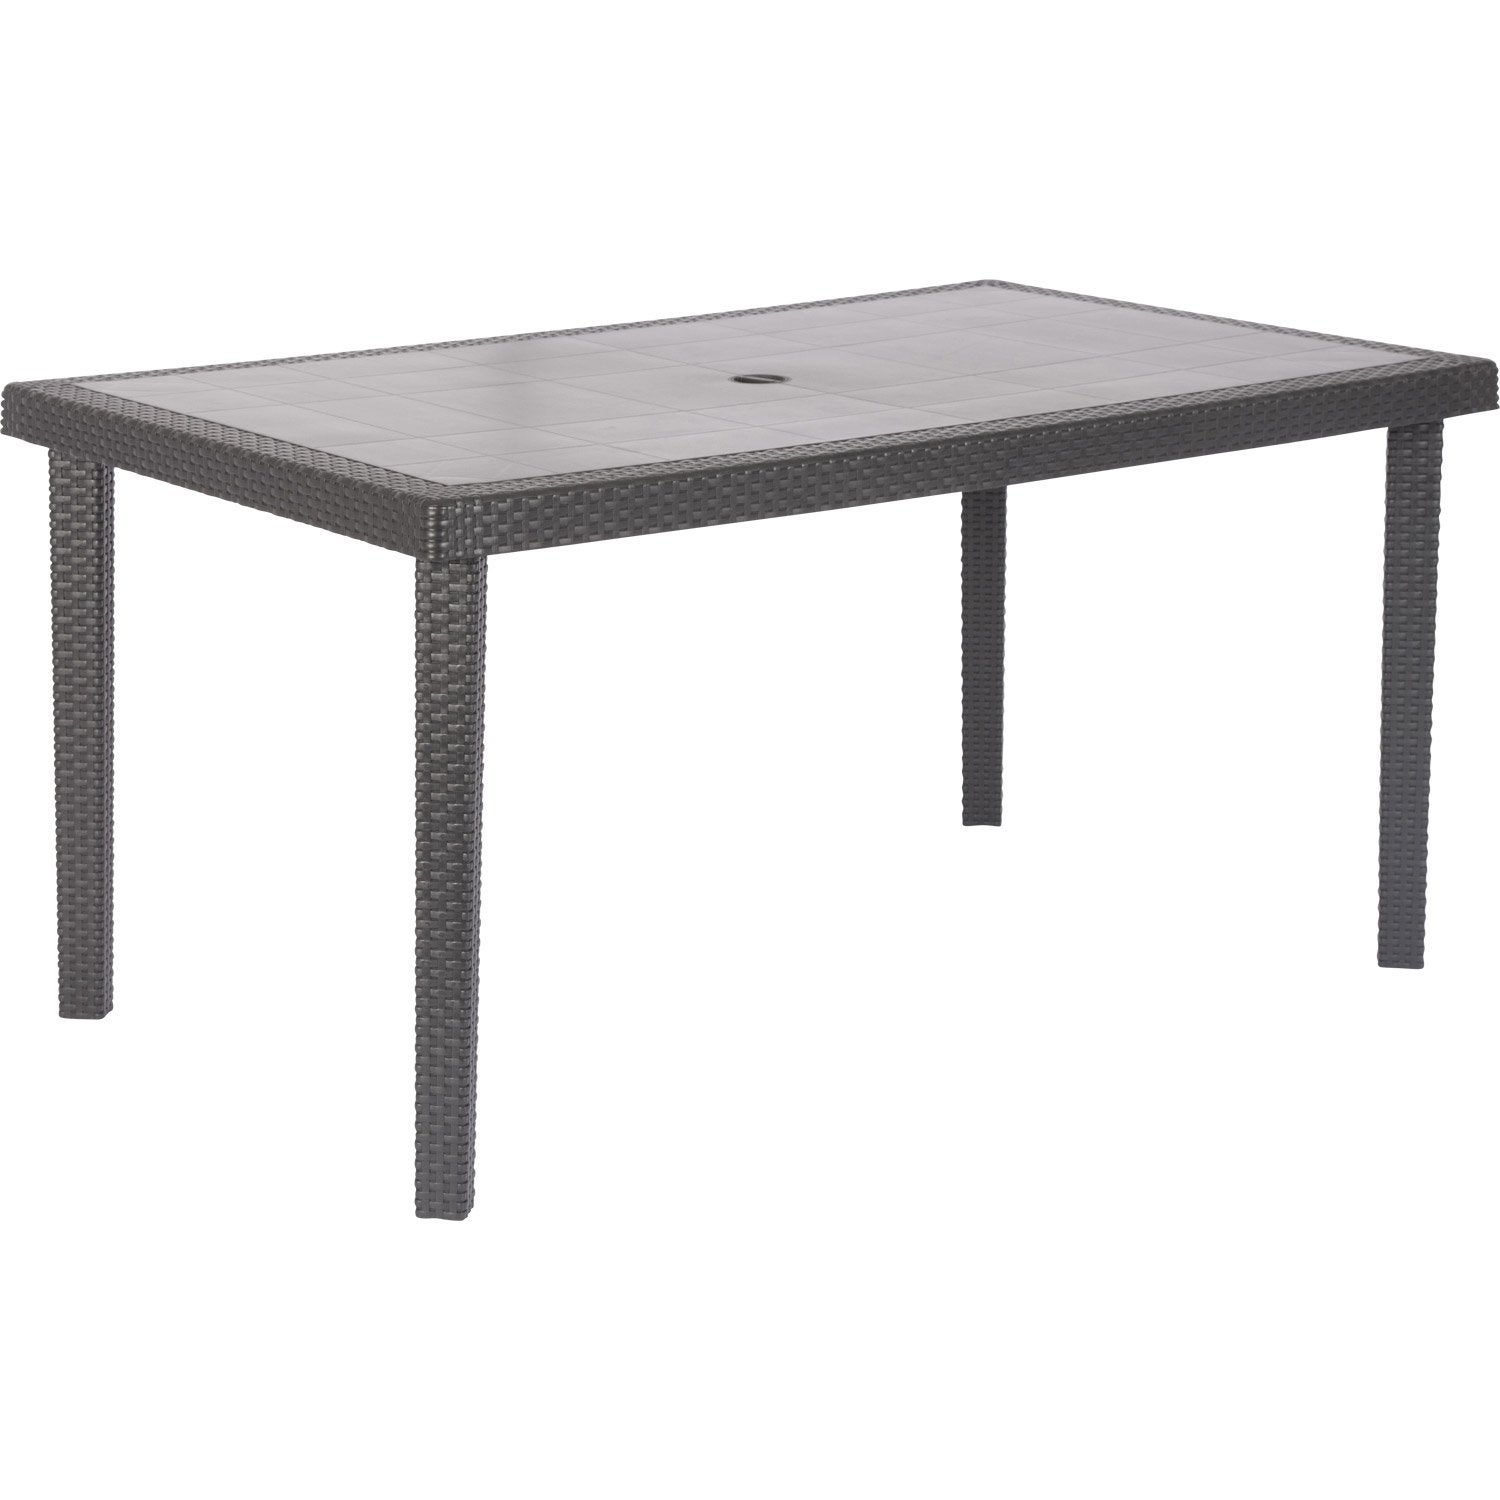 Leroy Merlin Table Jardin